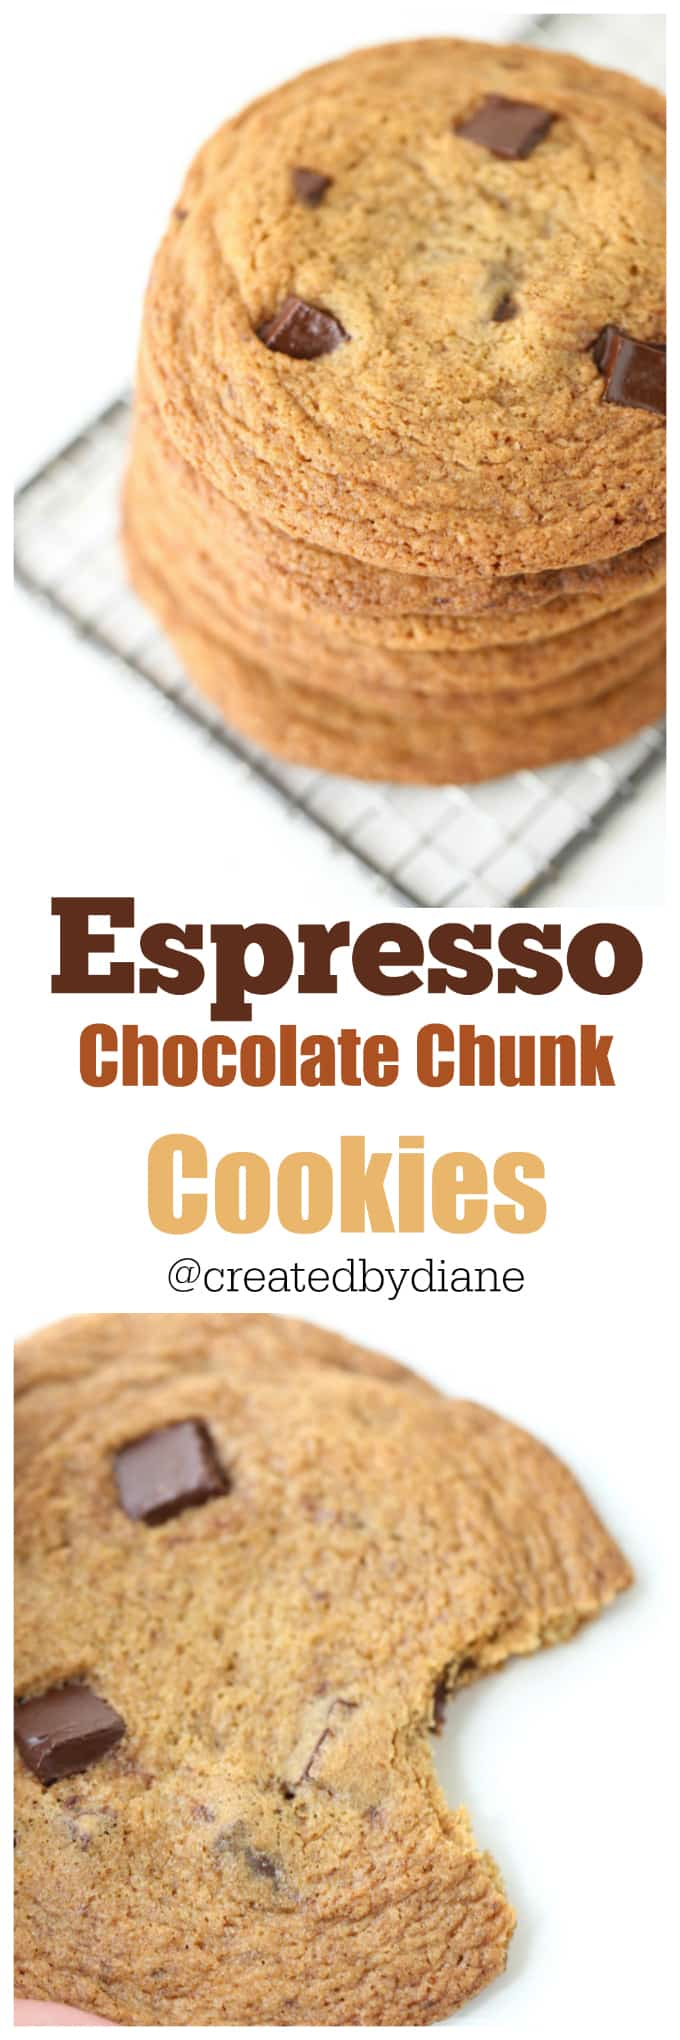 large-espresso-chocolate-chunk-cookies-www-createdby-diane-com